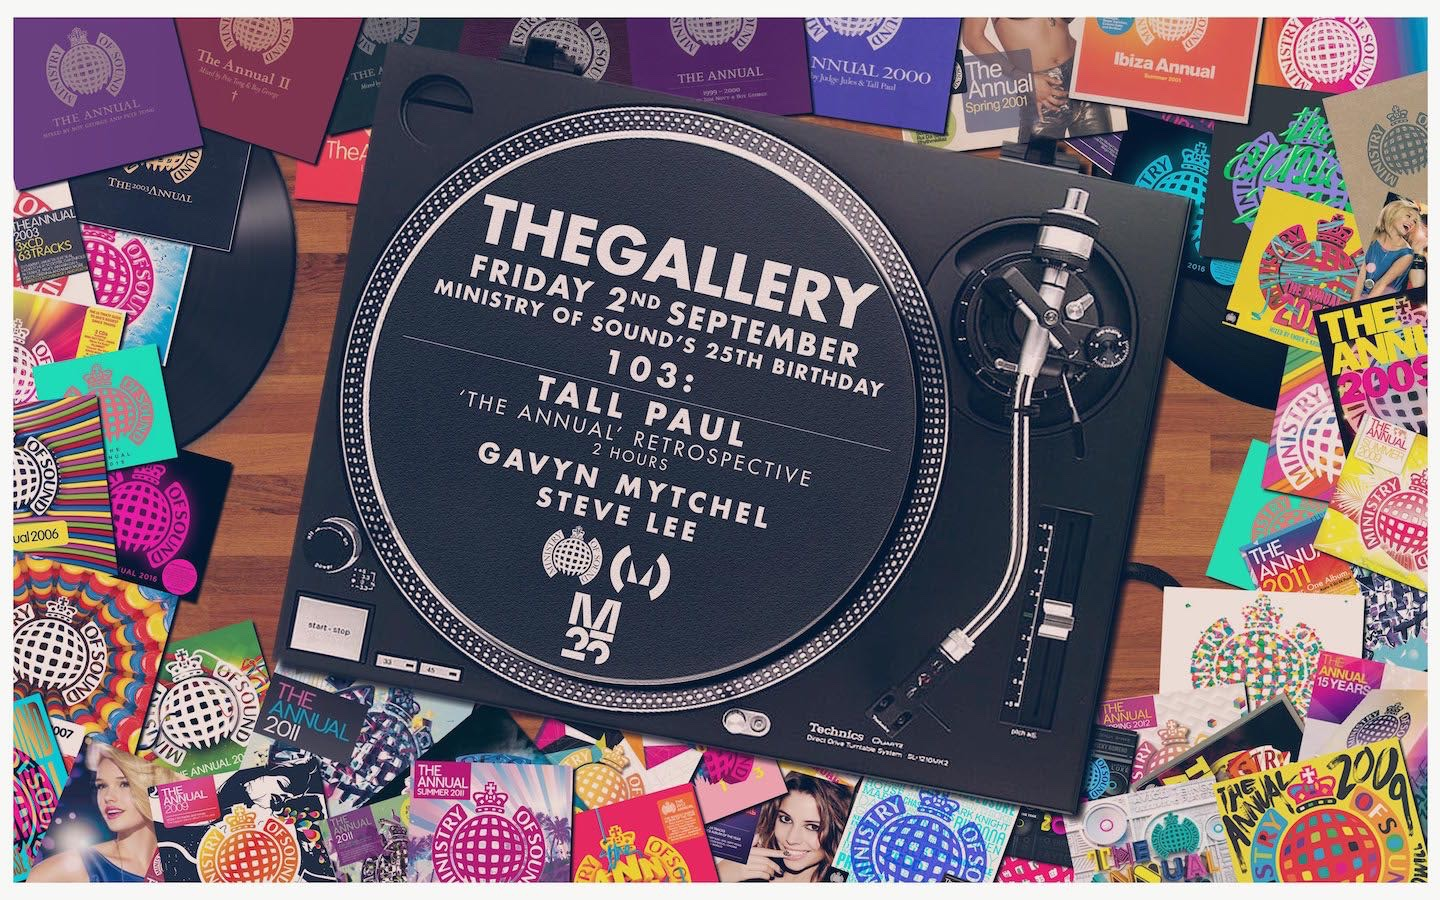 Tall Paul 25 Years of Ministry of Sound Retrospective Mix